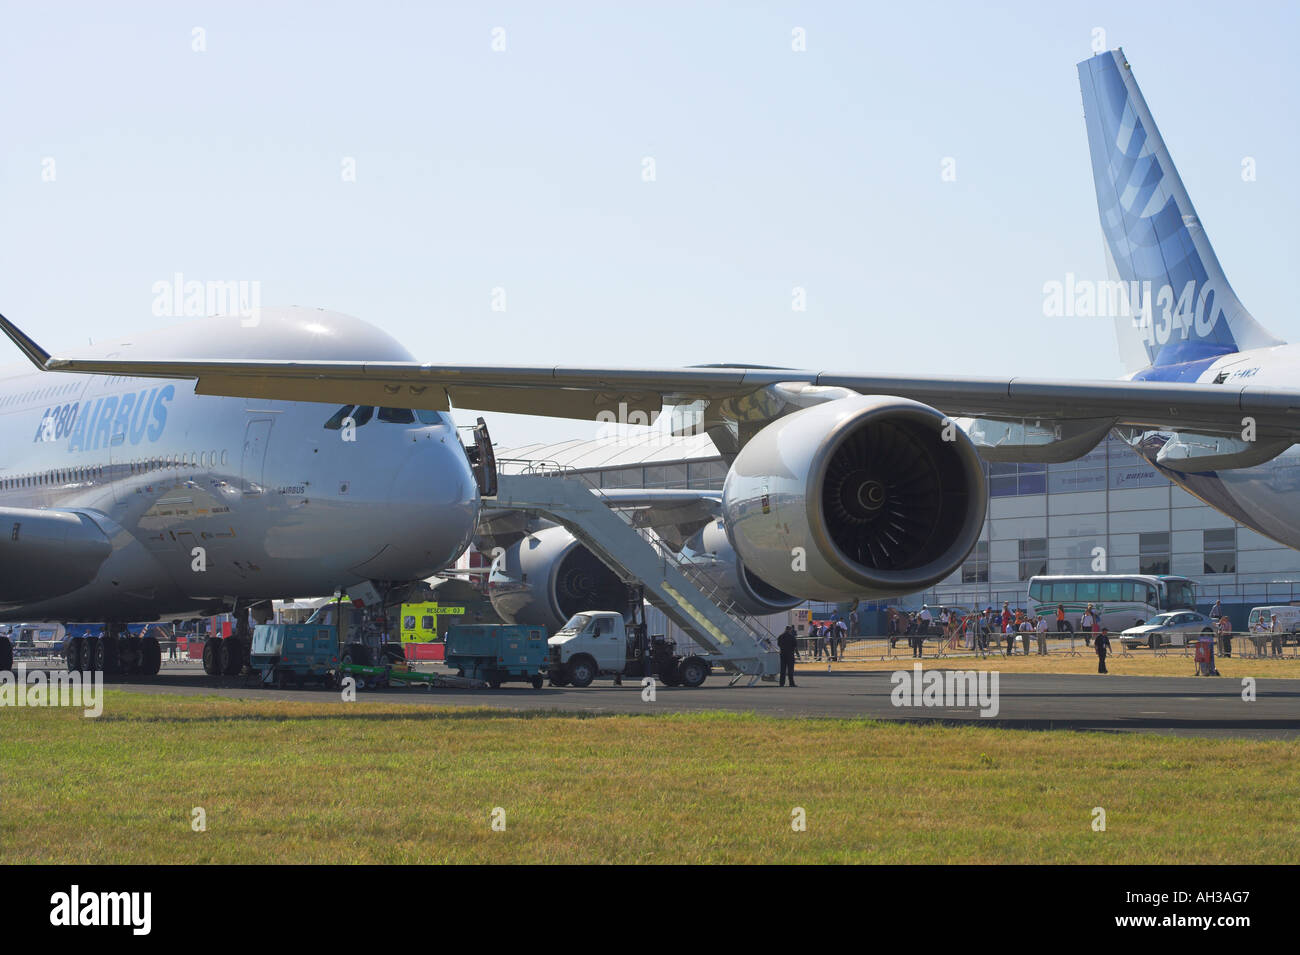 Airbus A340 600 rear with A380 behind - Stock Image